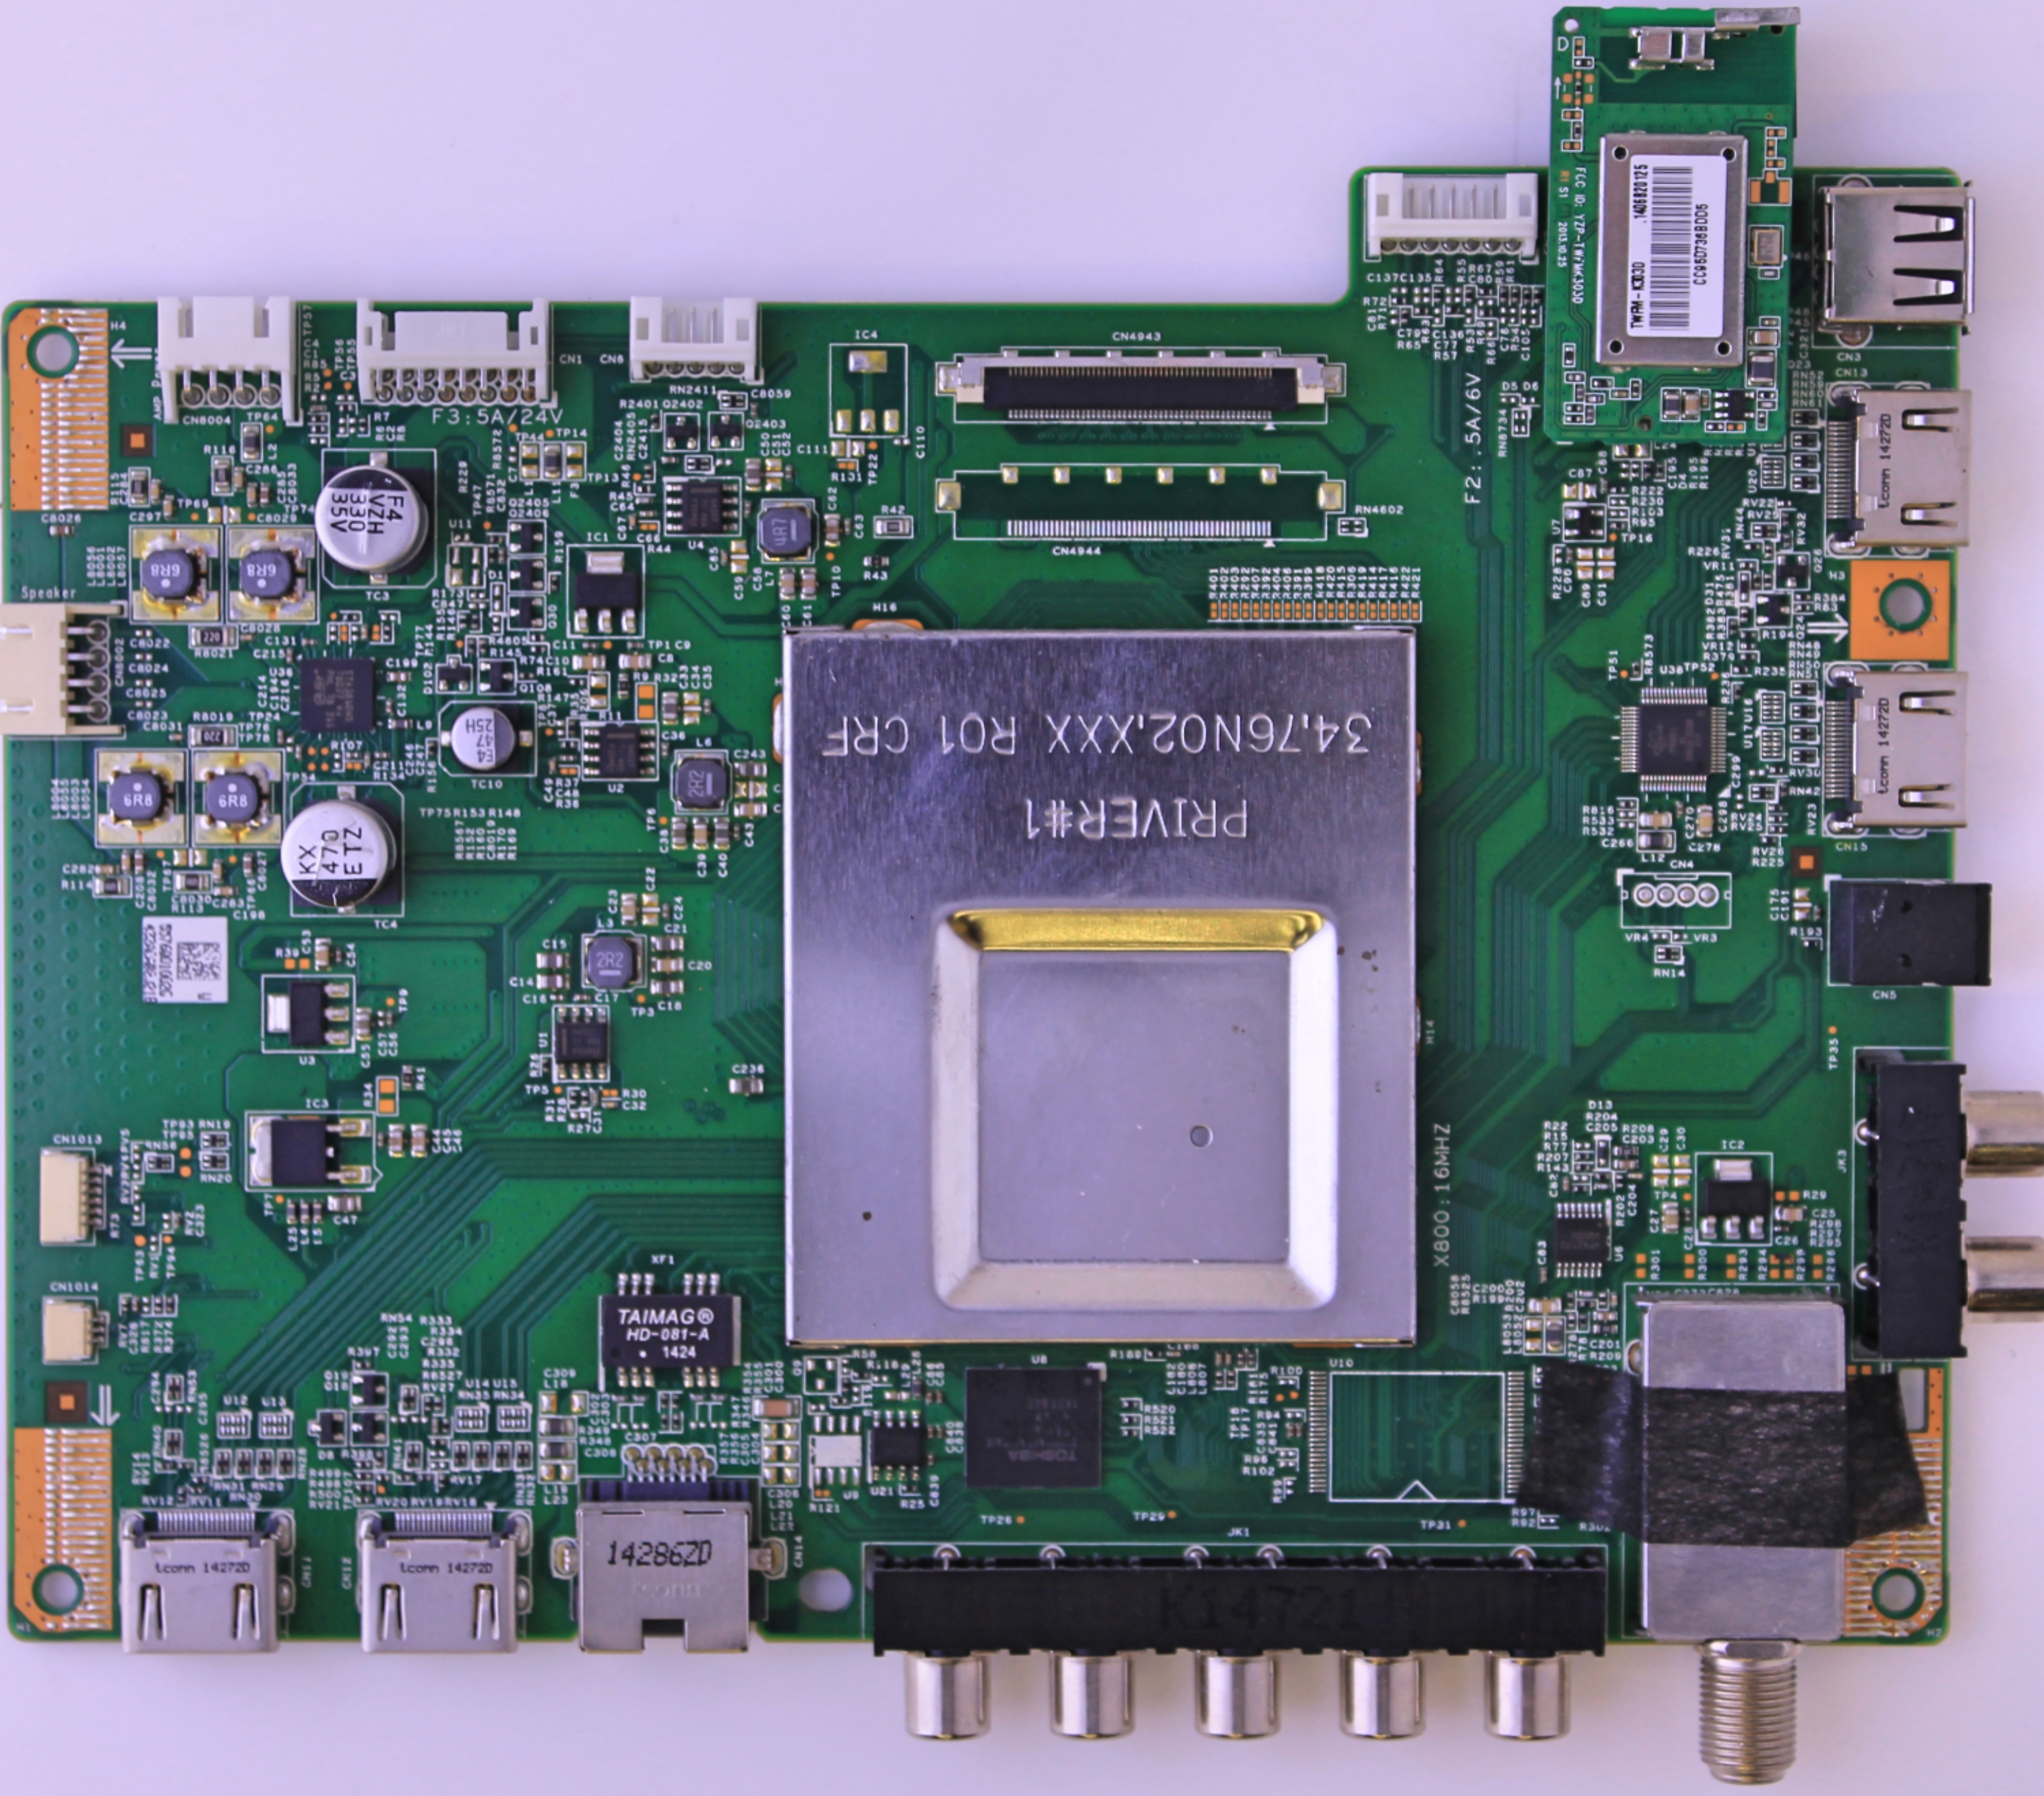 Vizio main board 91.76Q10.005G for TV model E550I-B2E serial LWZJPPDQ / LWJJPPDR